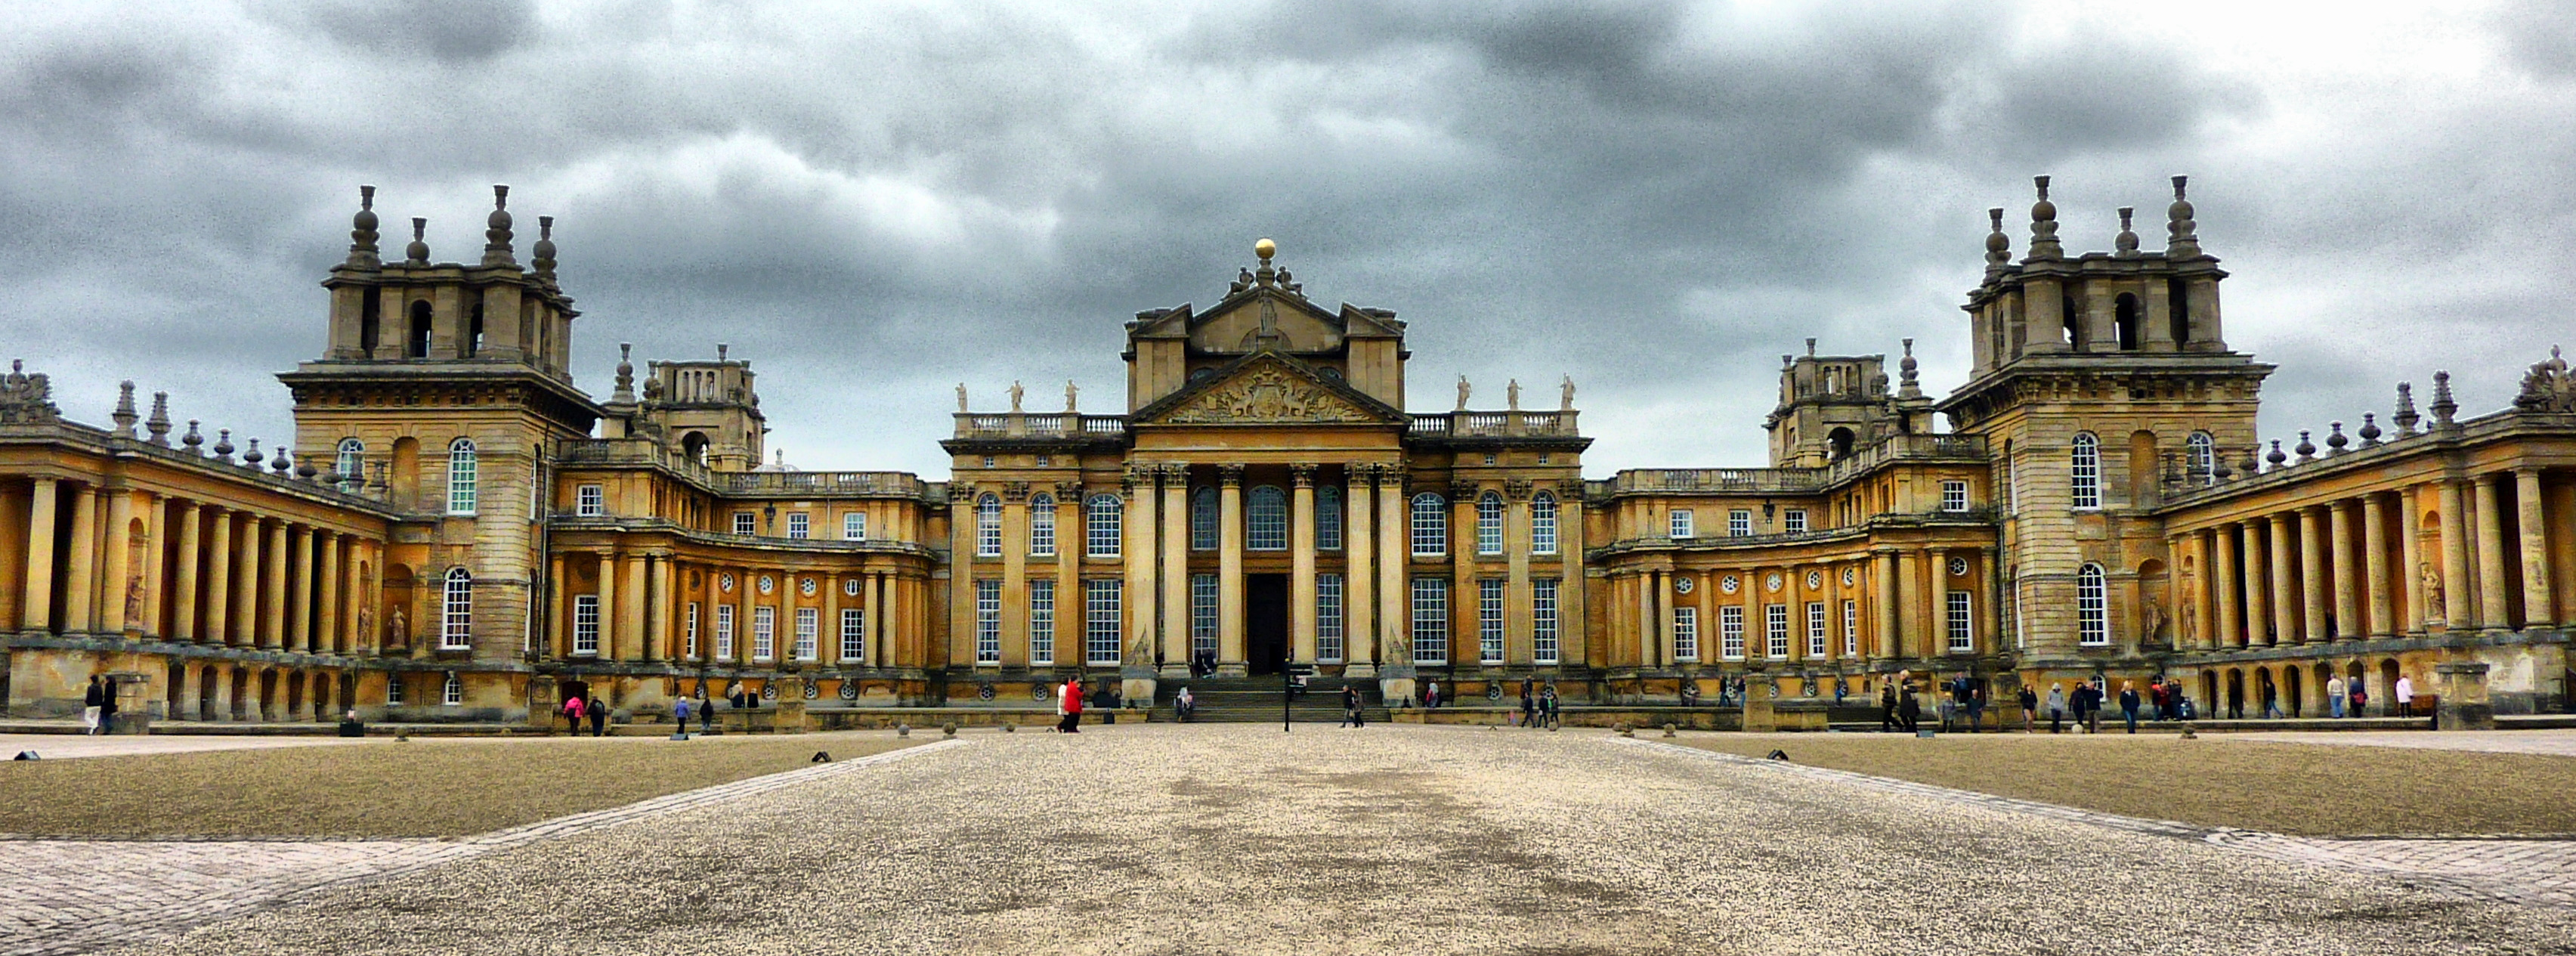 Blenheim Palace-Becks